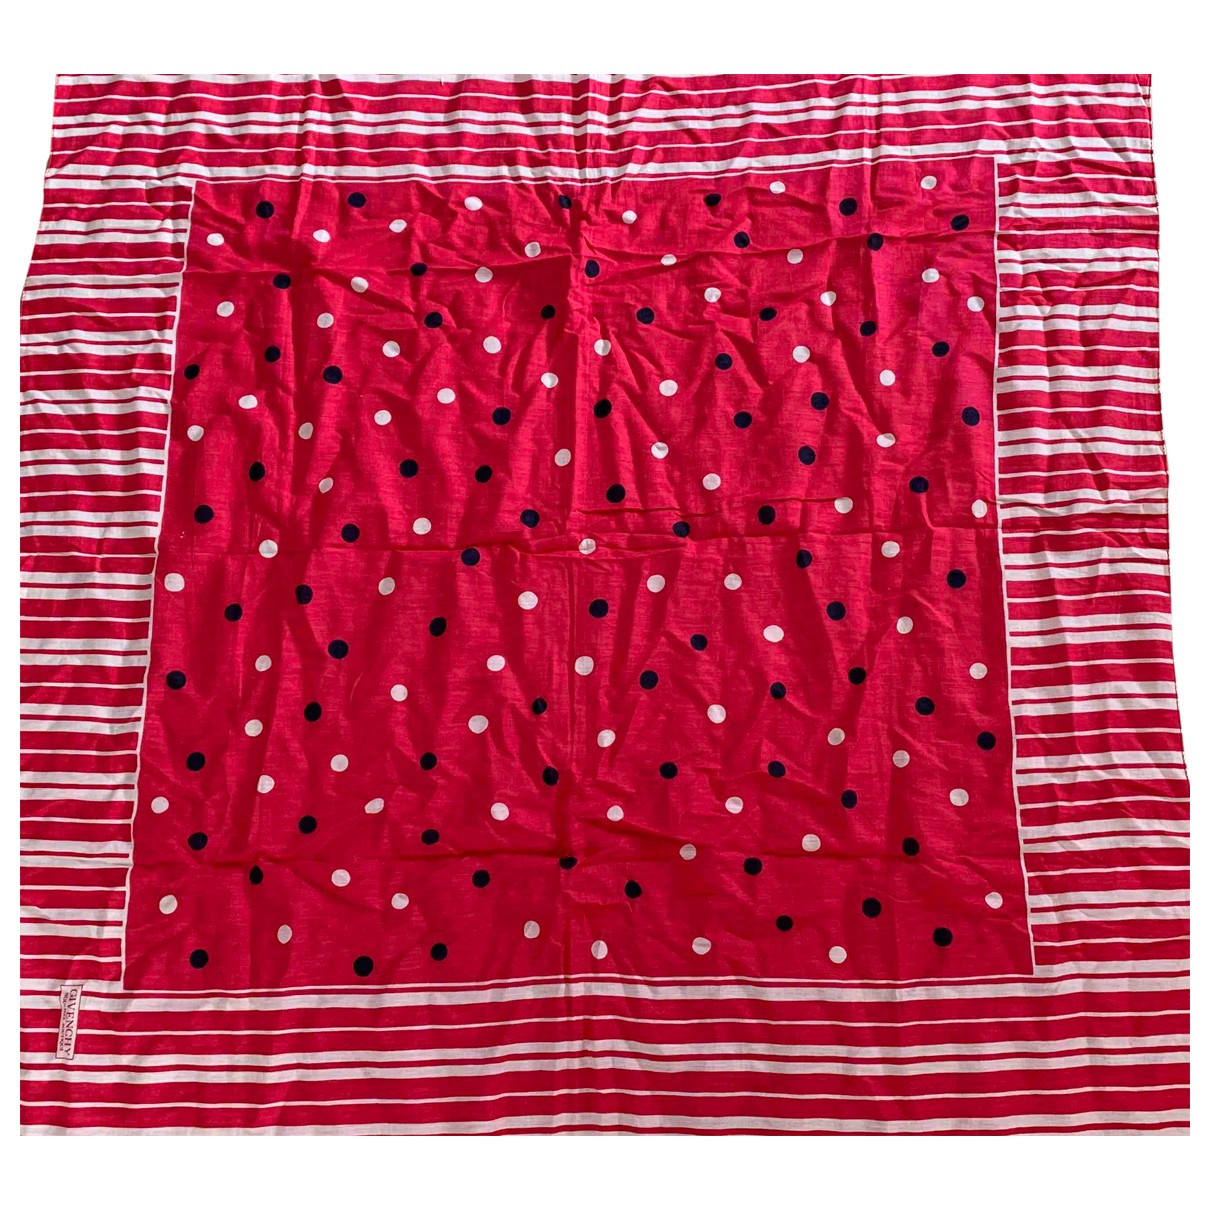 Givenchy \N Pink Cotton Silk handkerchief for Women \N